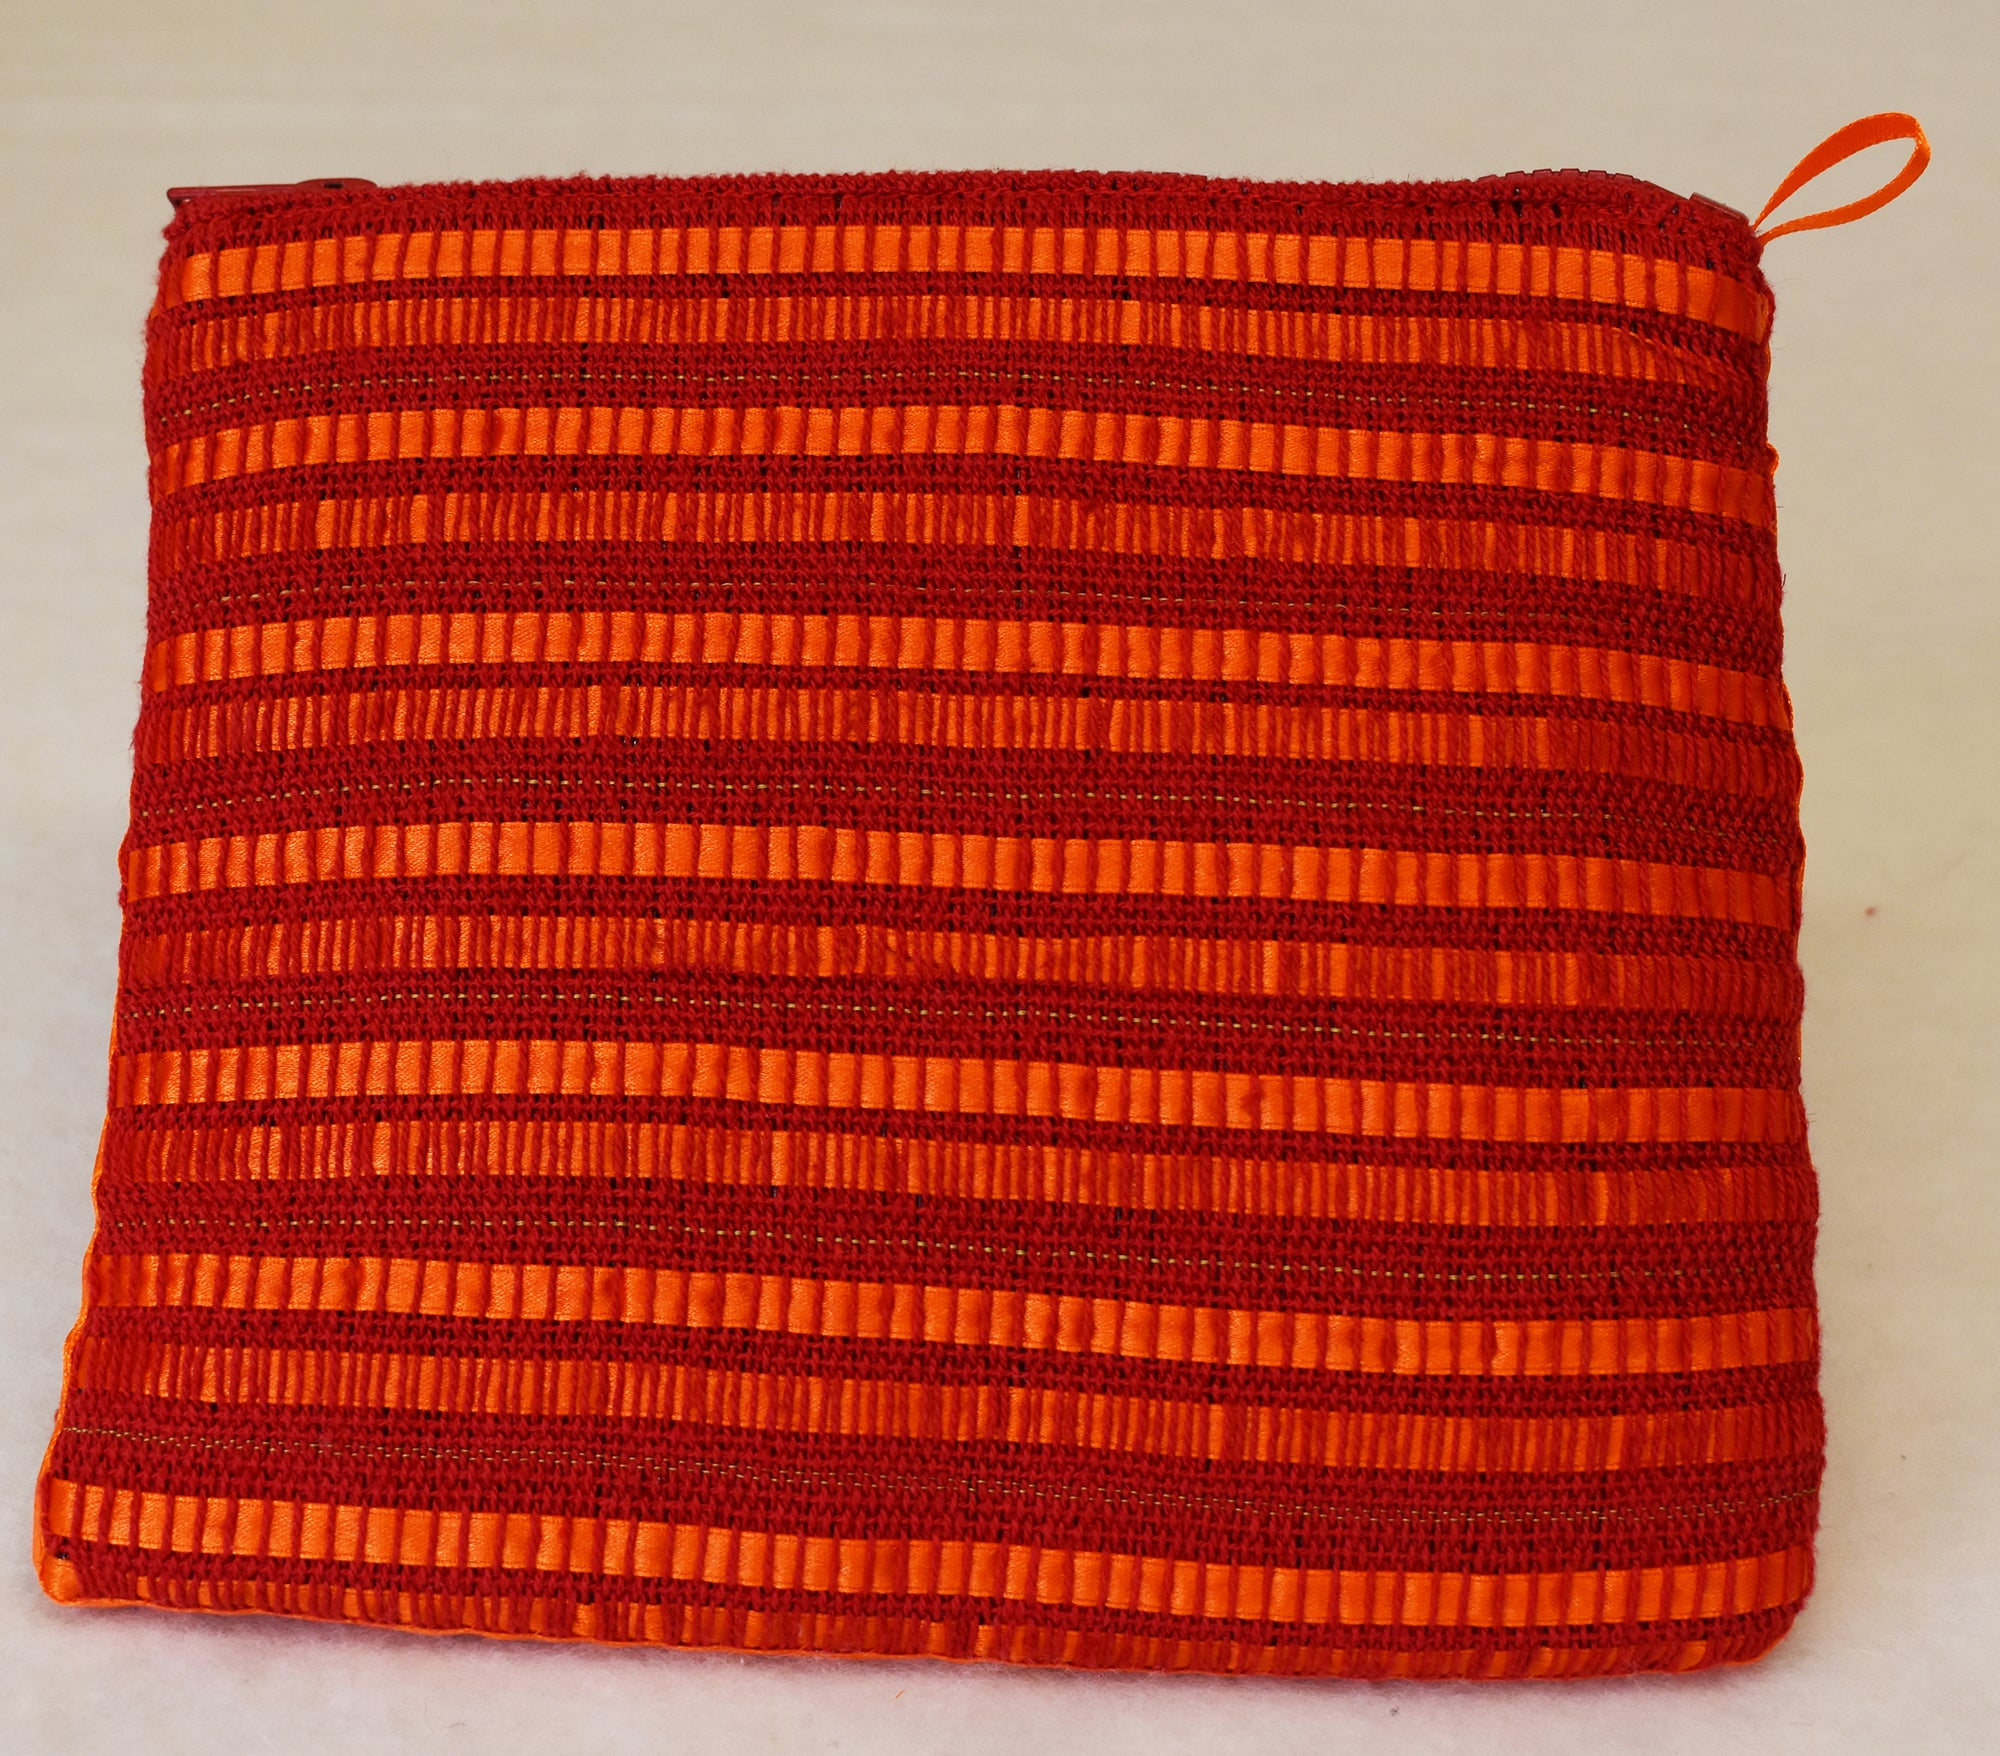 Ribbon clutch bag